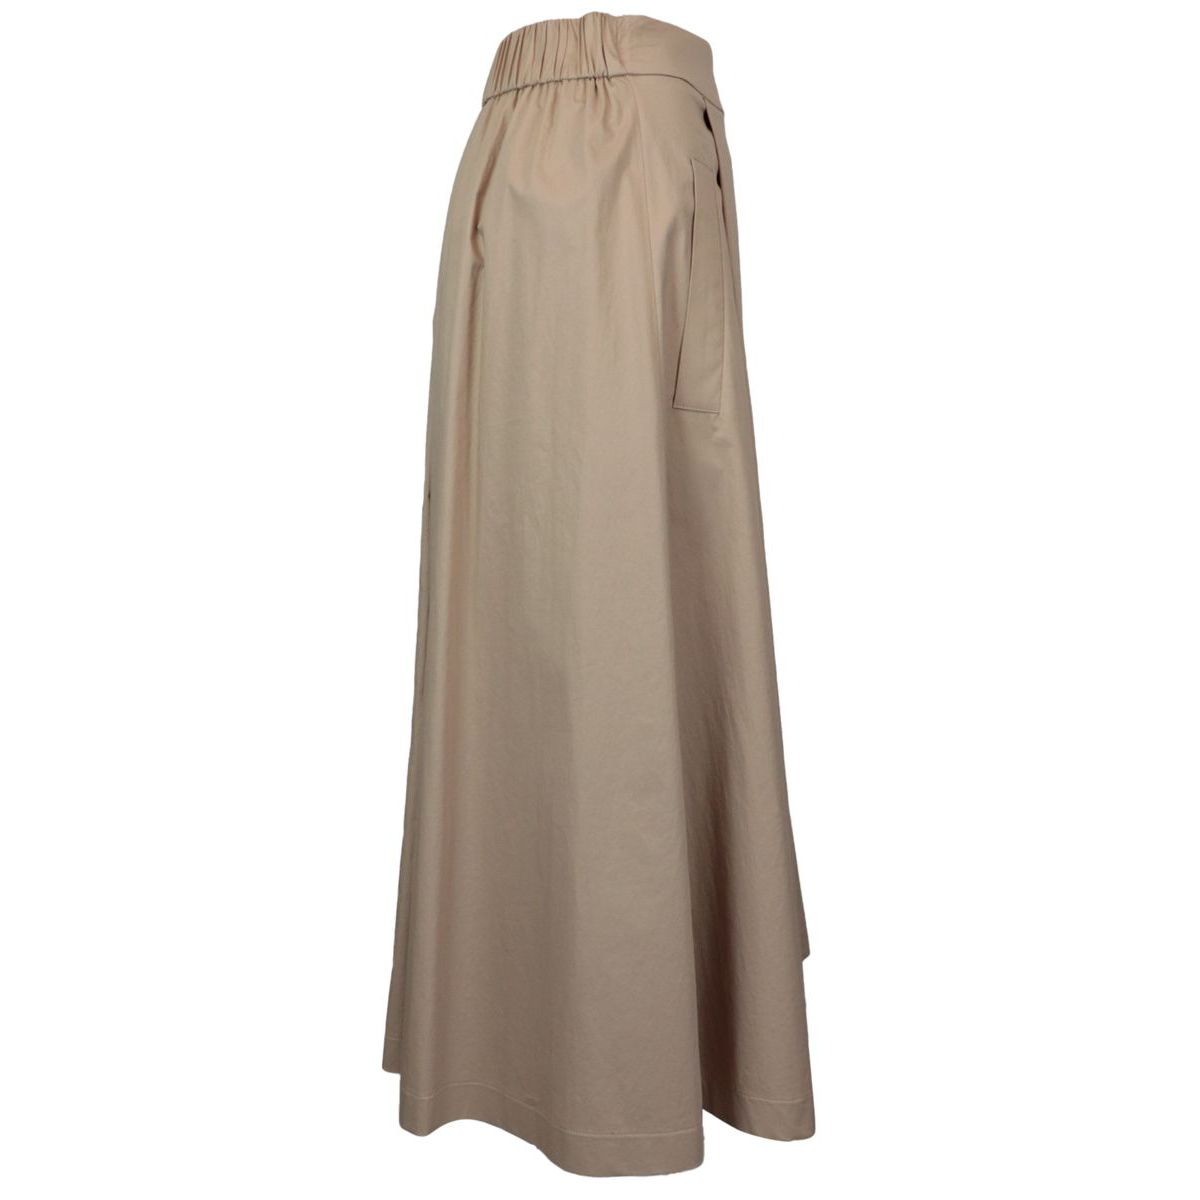 Cotton skirt with pockets Camel PESERICO